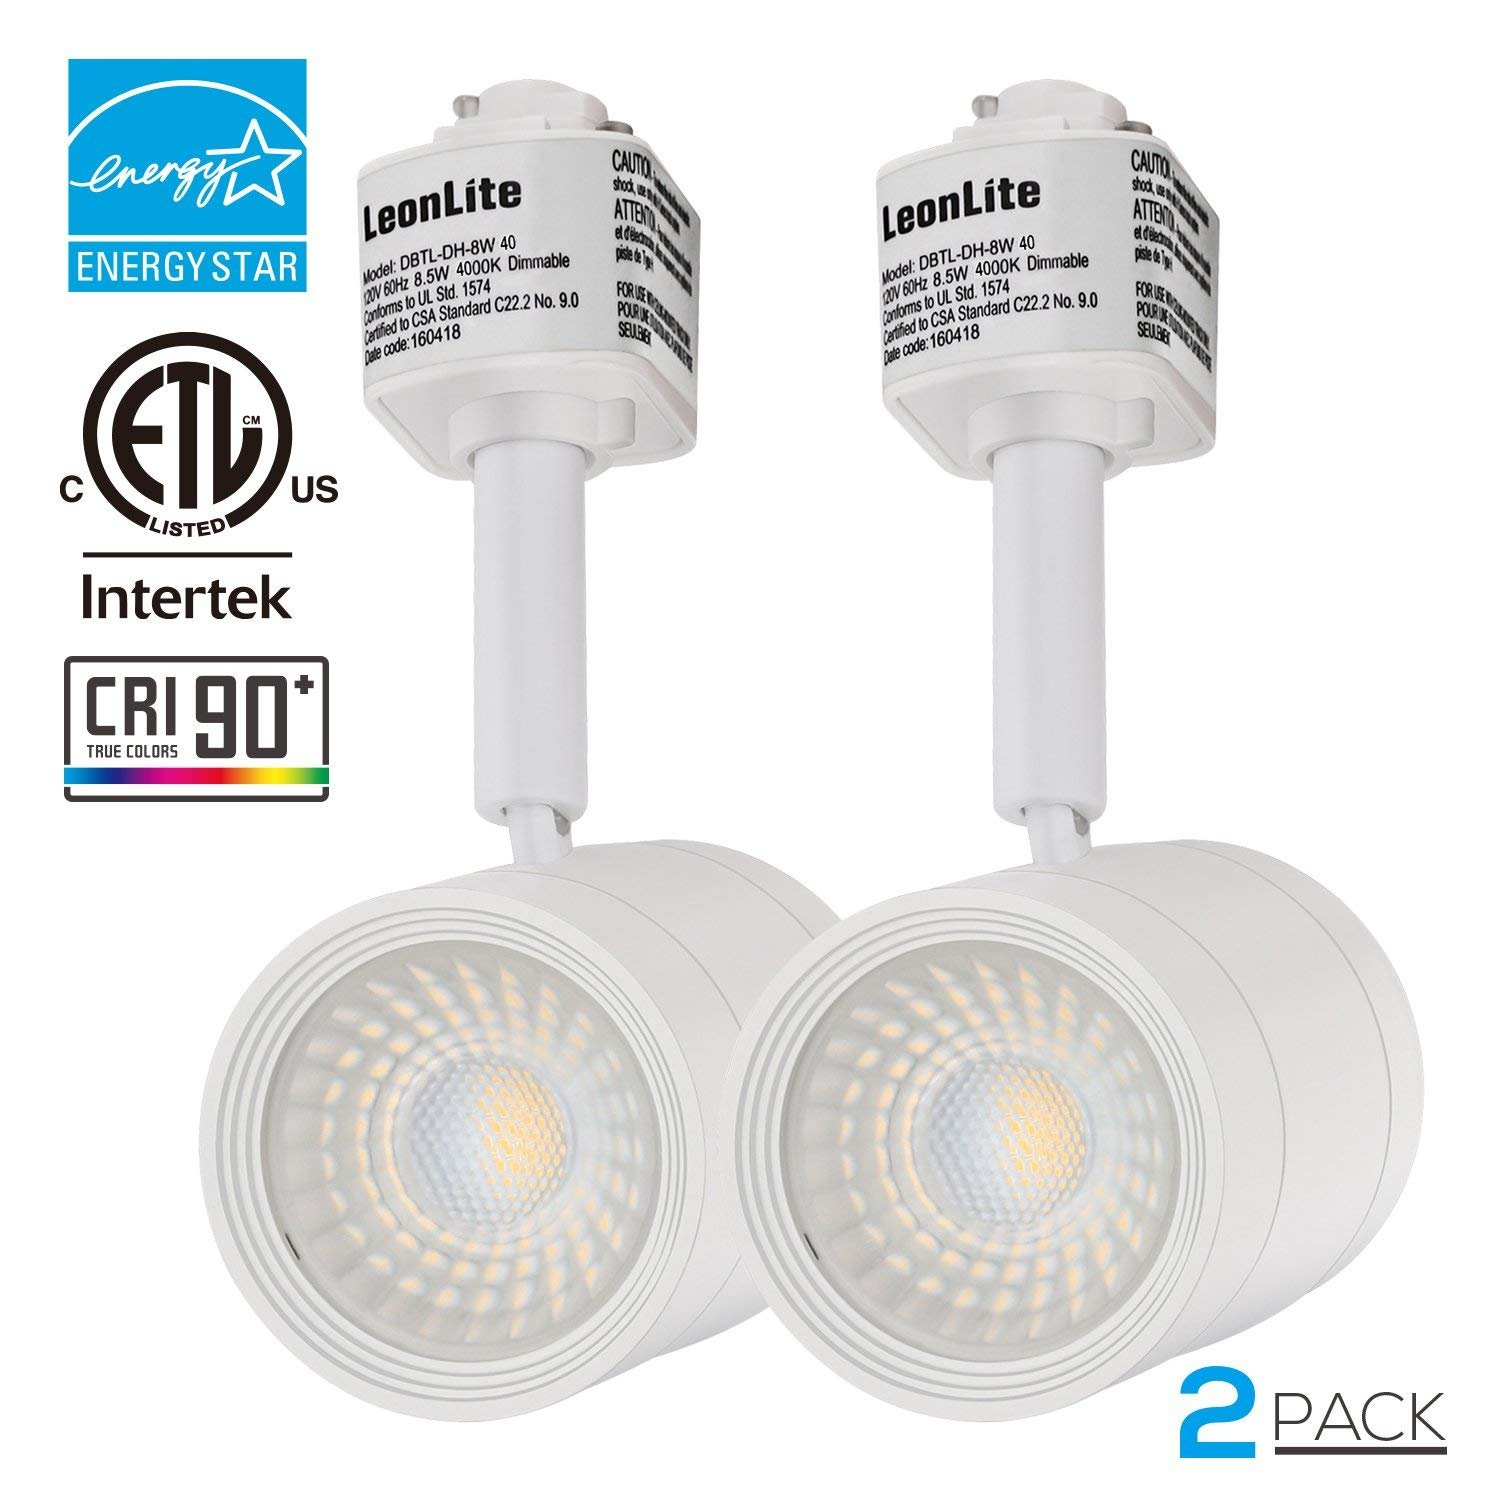 2 PACK 8.5W(50W Equiv.) Integrated CRI90+ LED Track Light Head, Dimmable 38° Spotlight Track Light, 500lm ENERGY STAR ETL-Listed for Accent Task Wall Art Exhibition Retail Lighting, 4000K Cool White